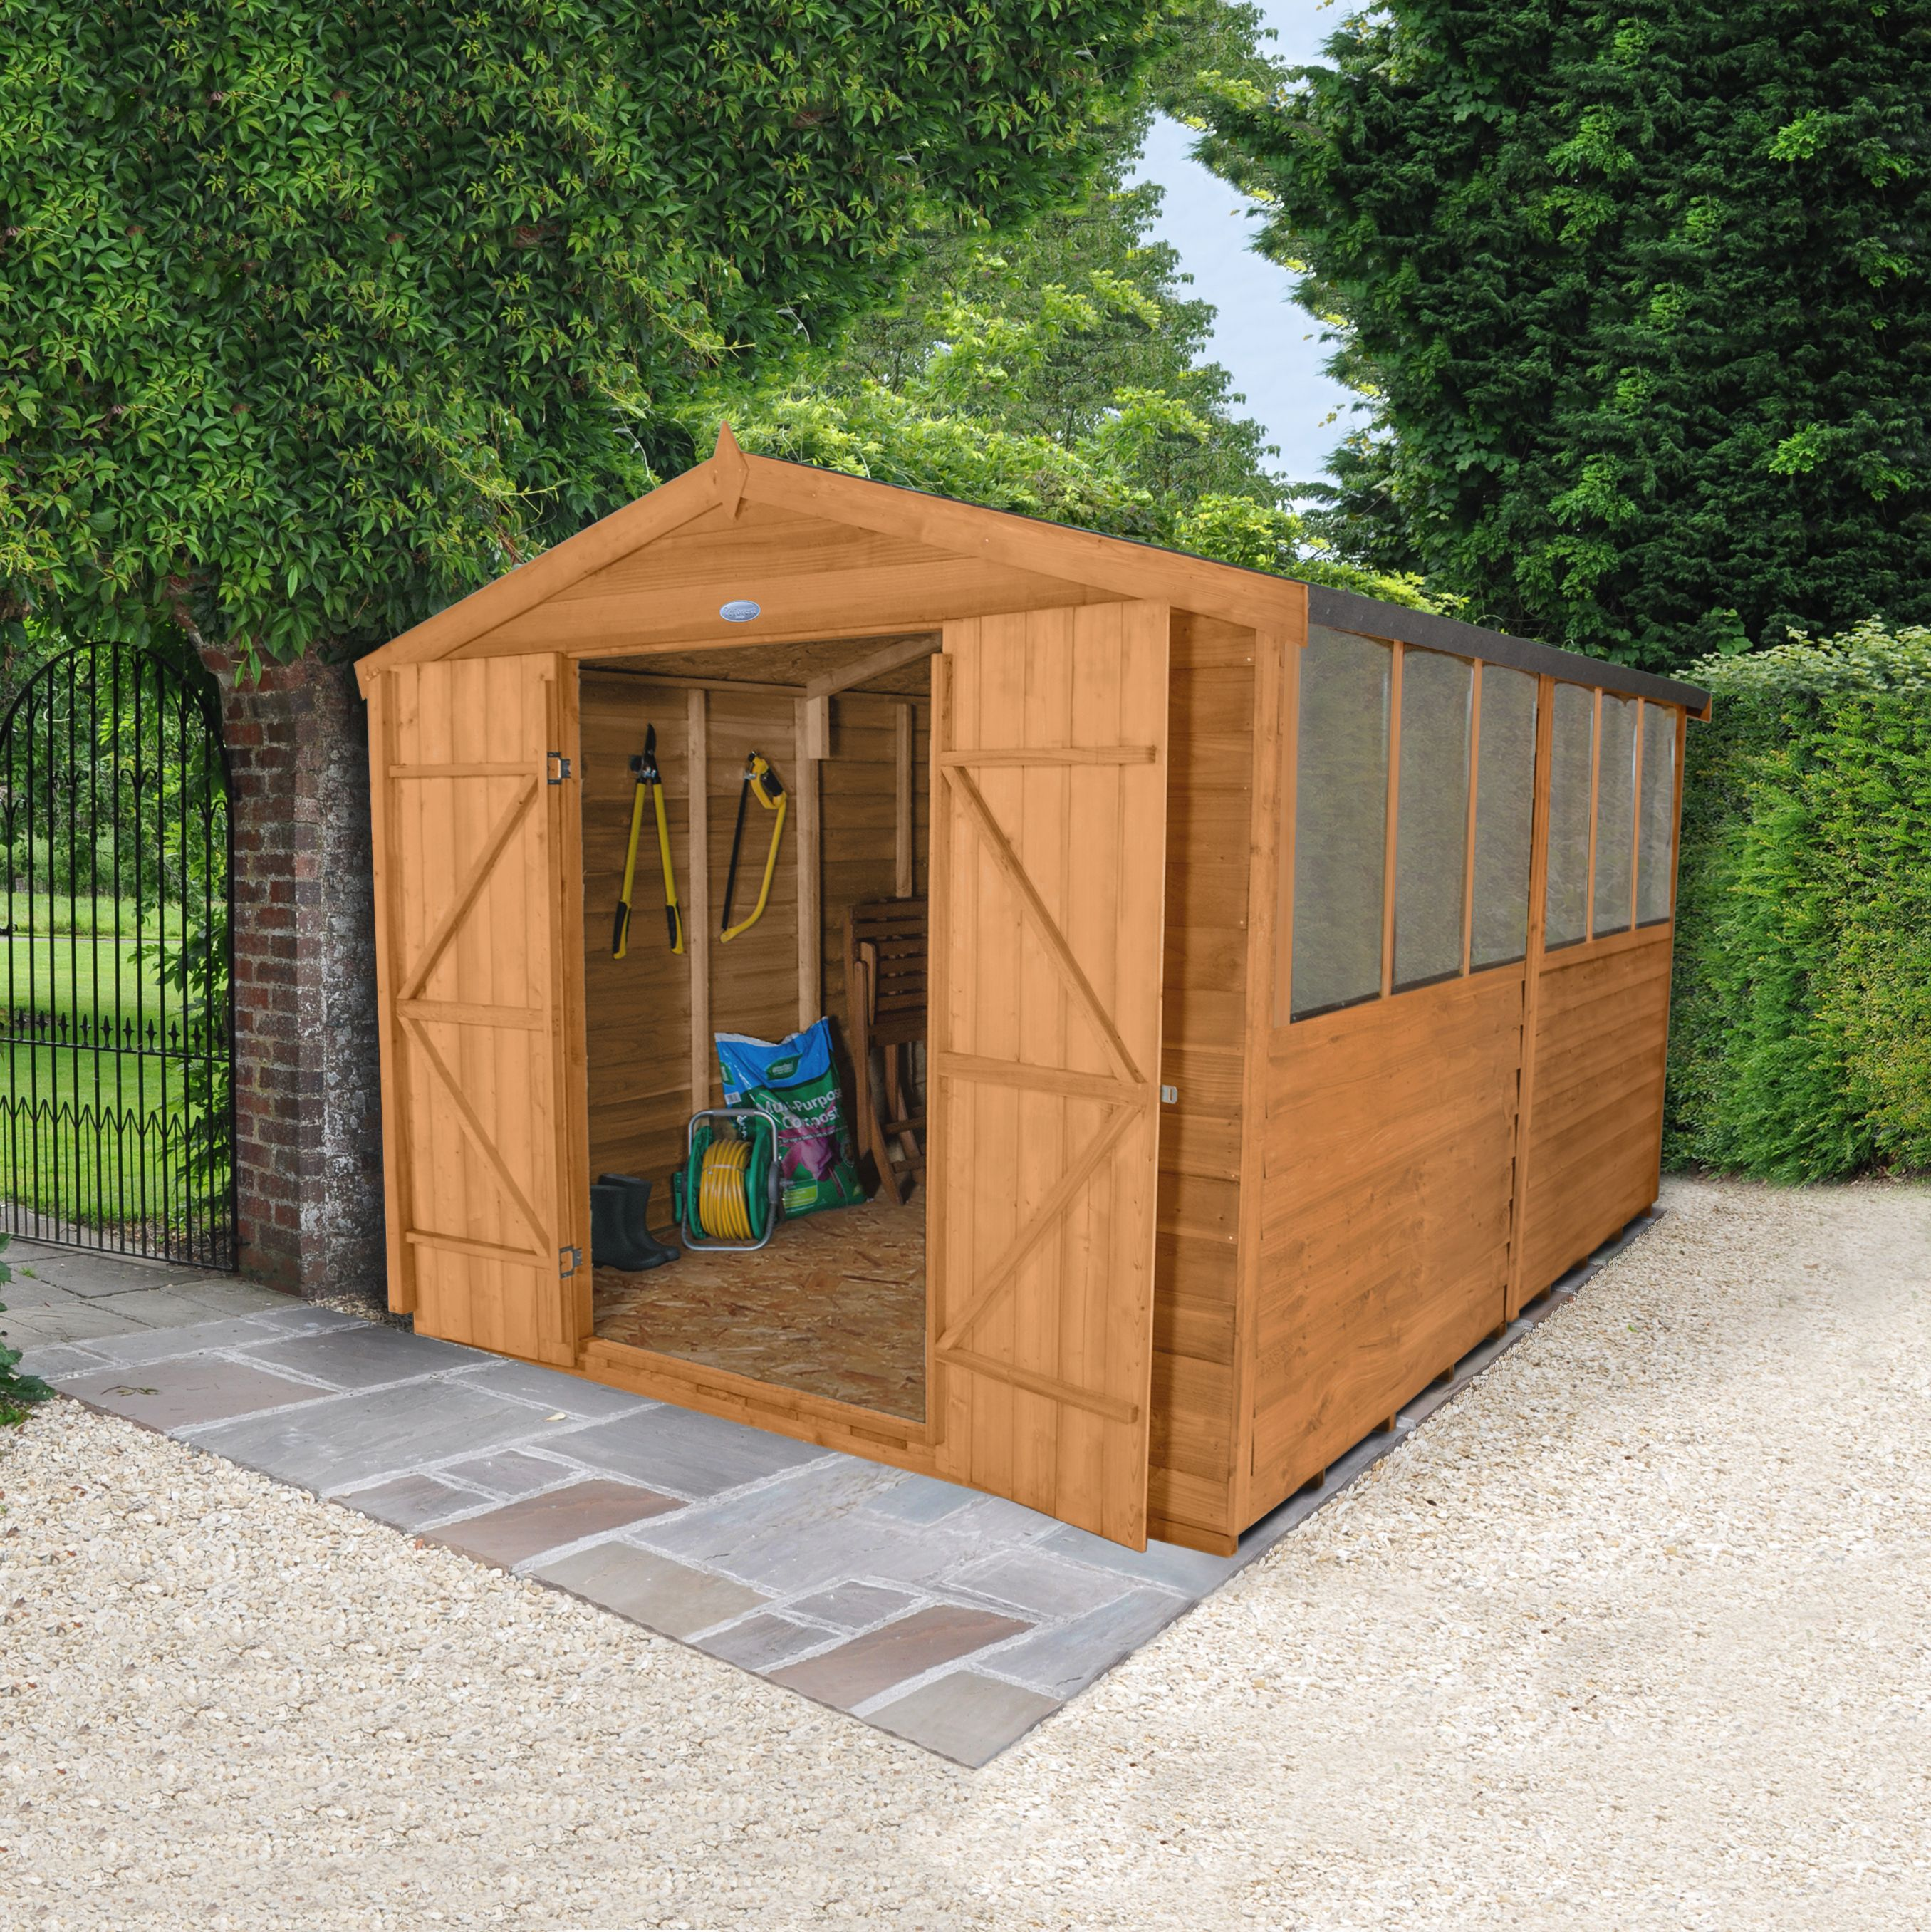 Overlap apex wooden bike store easy fit roof 7x3 for Garden shed 9x4